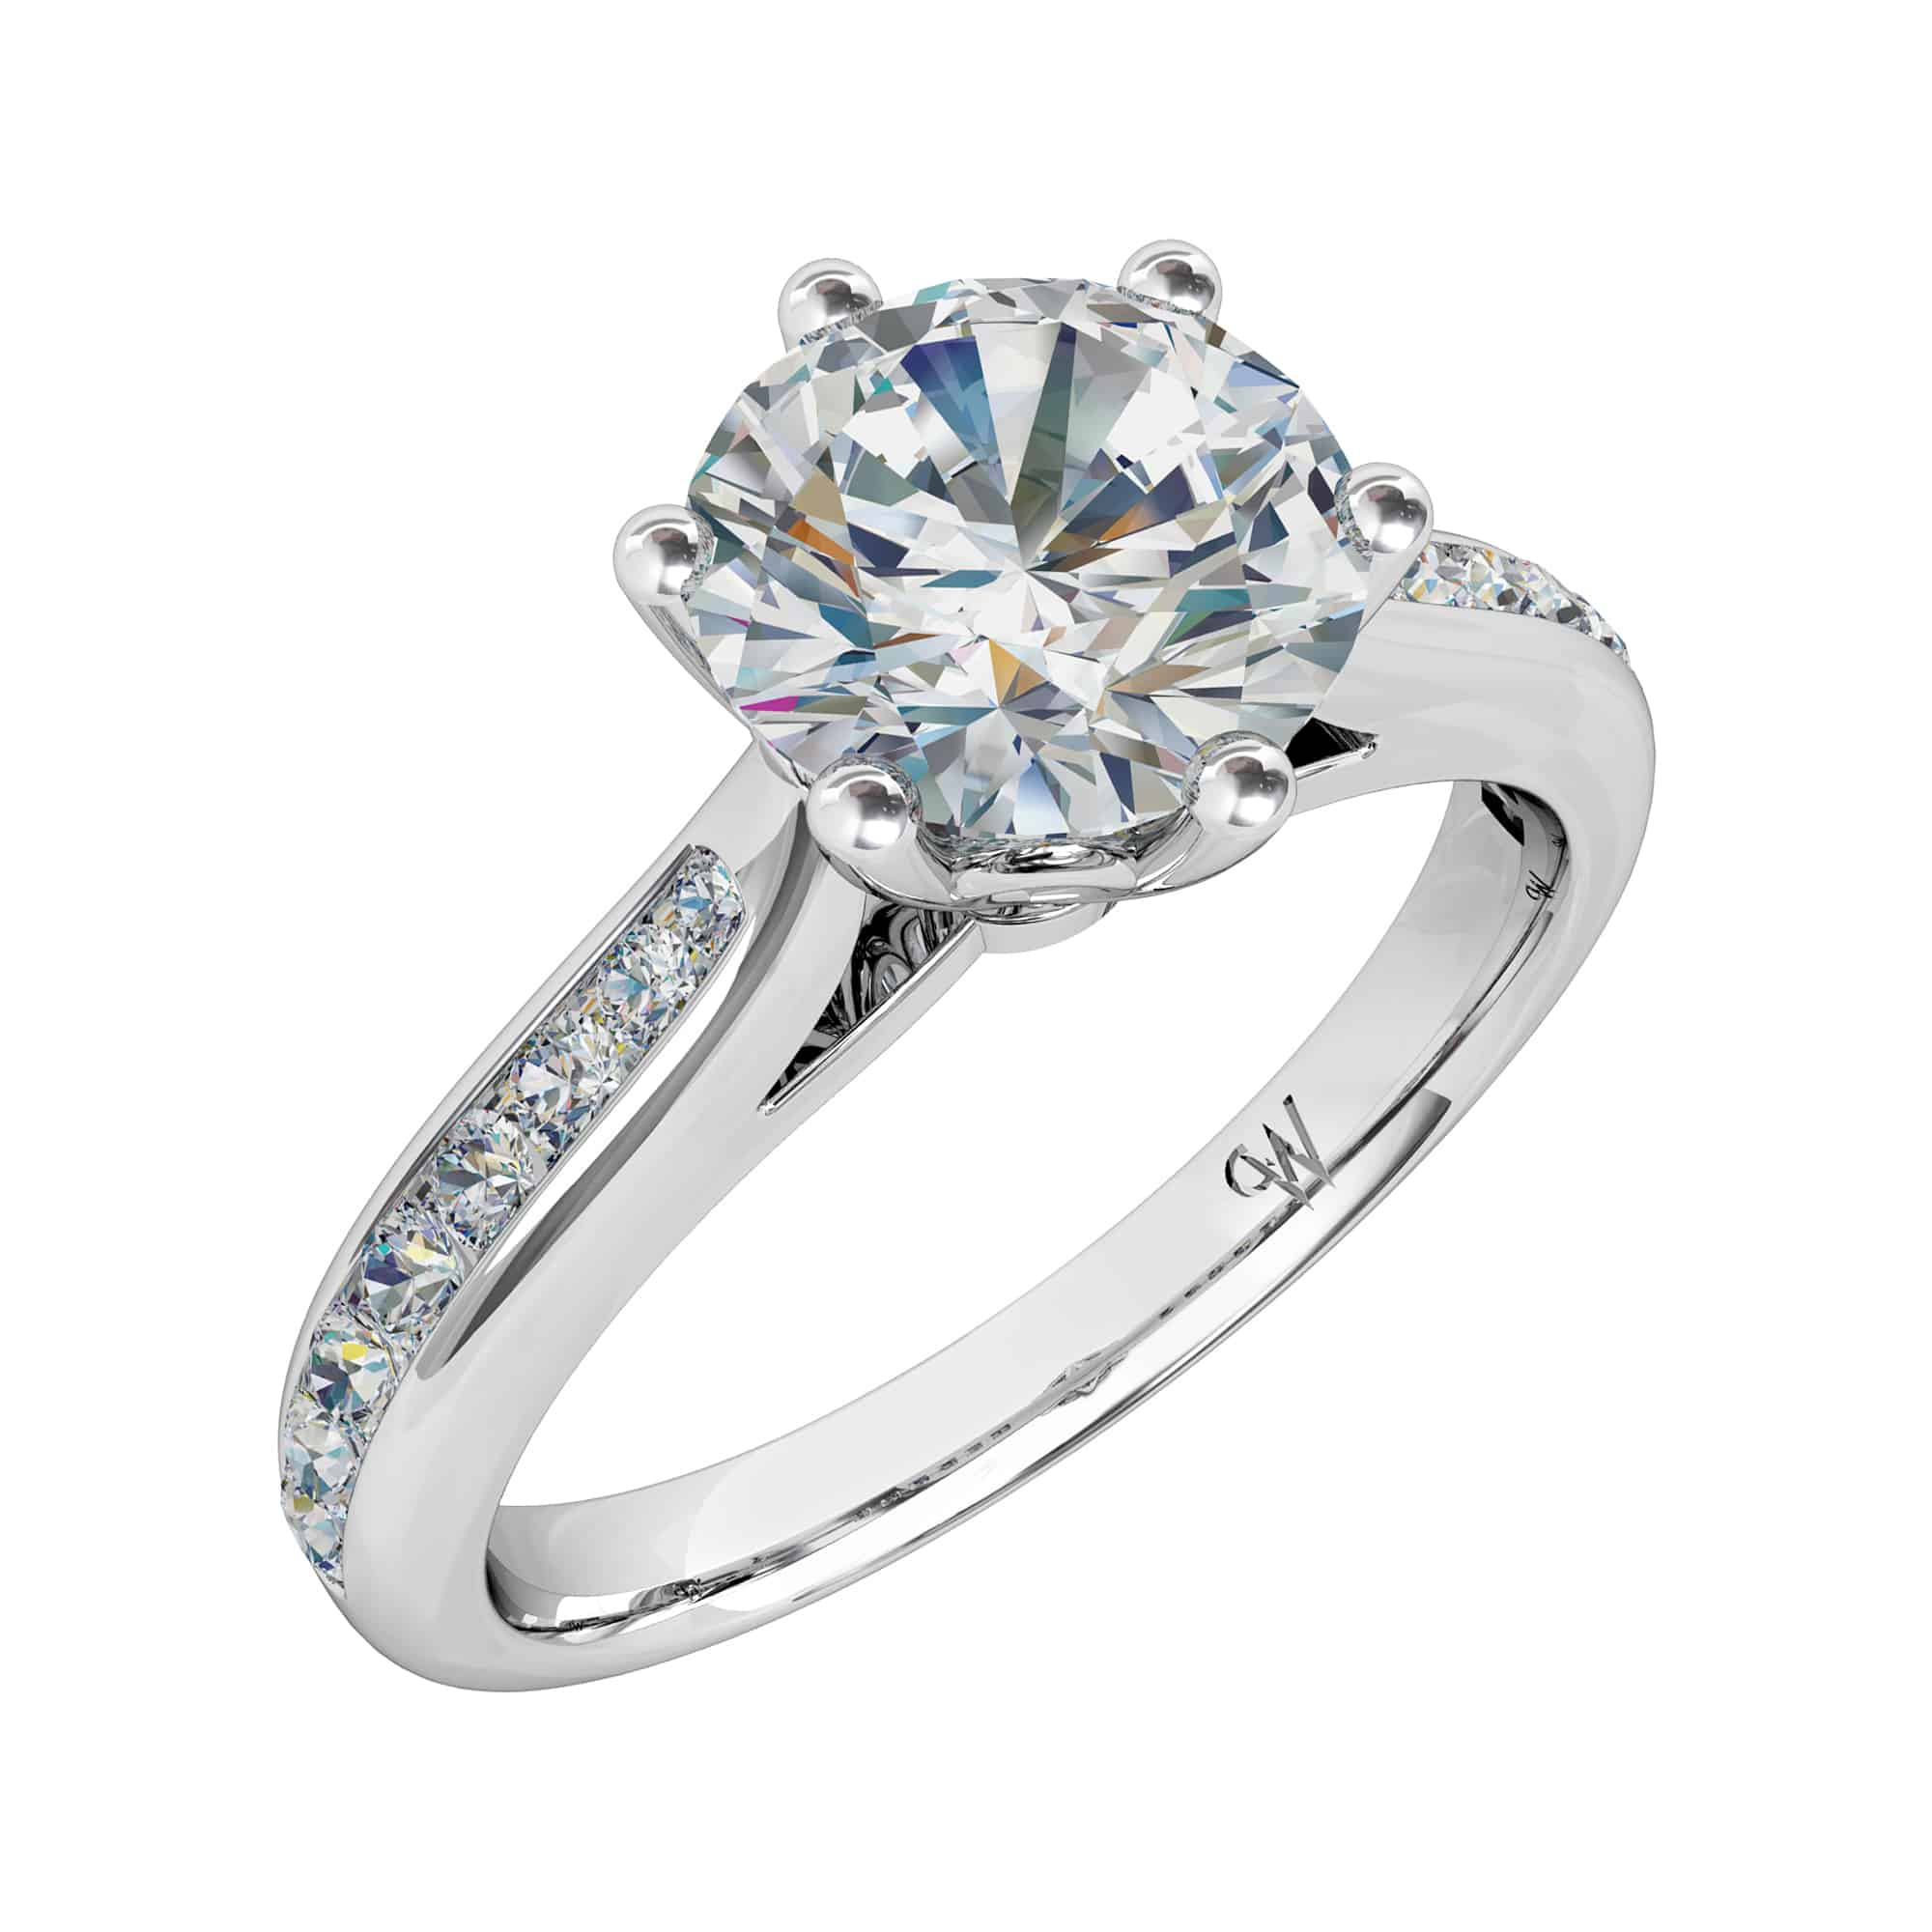 rings collection wedding a cut hand sku round engraved diamond ring carat ladies tacori setting engagement brilliant